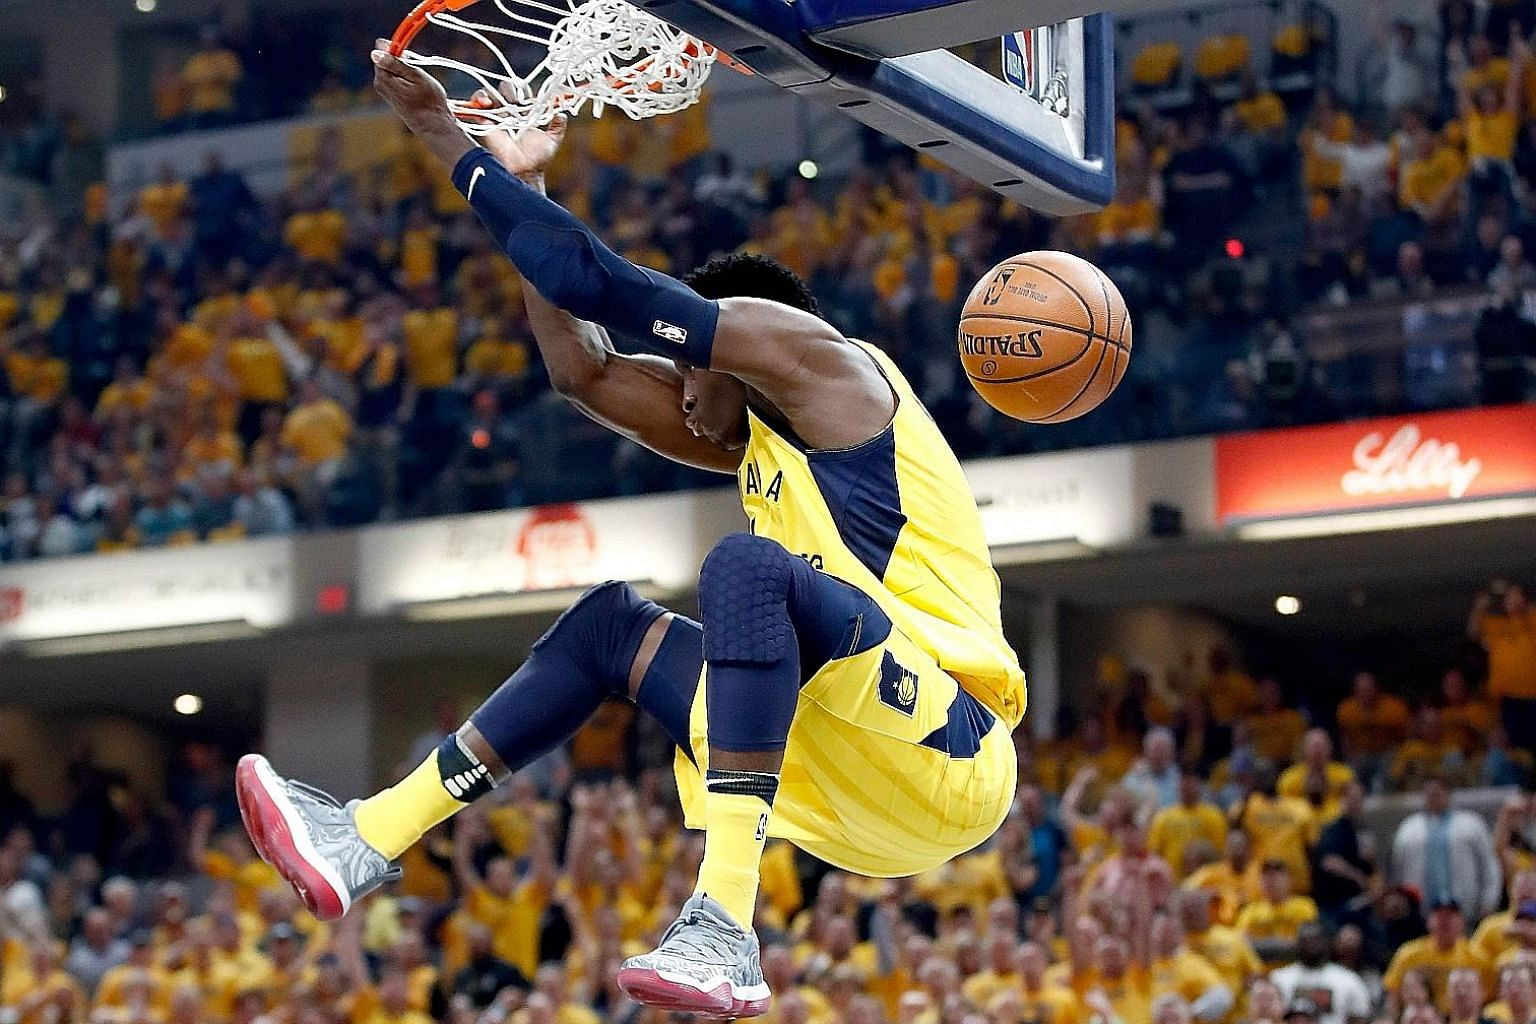 Inspired by Victor Oladipo's first play-off triple double (28 points, 13 rebounds and 10 assists), the Indiana Pacers beat the Cavaliers 121-87 to level the first-round tie at 3-3. Game 7 is today (tomorrow morning, Singapore time) in Cleveland.